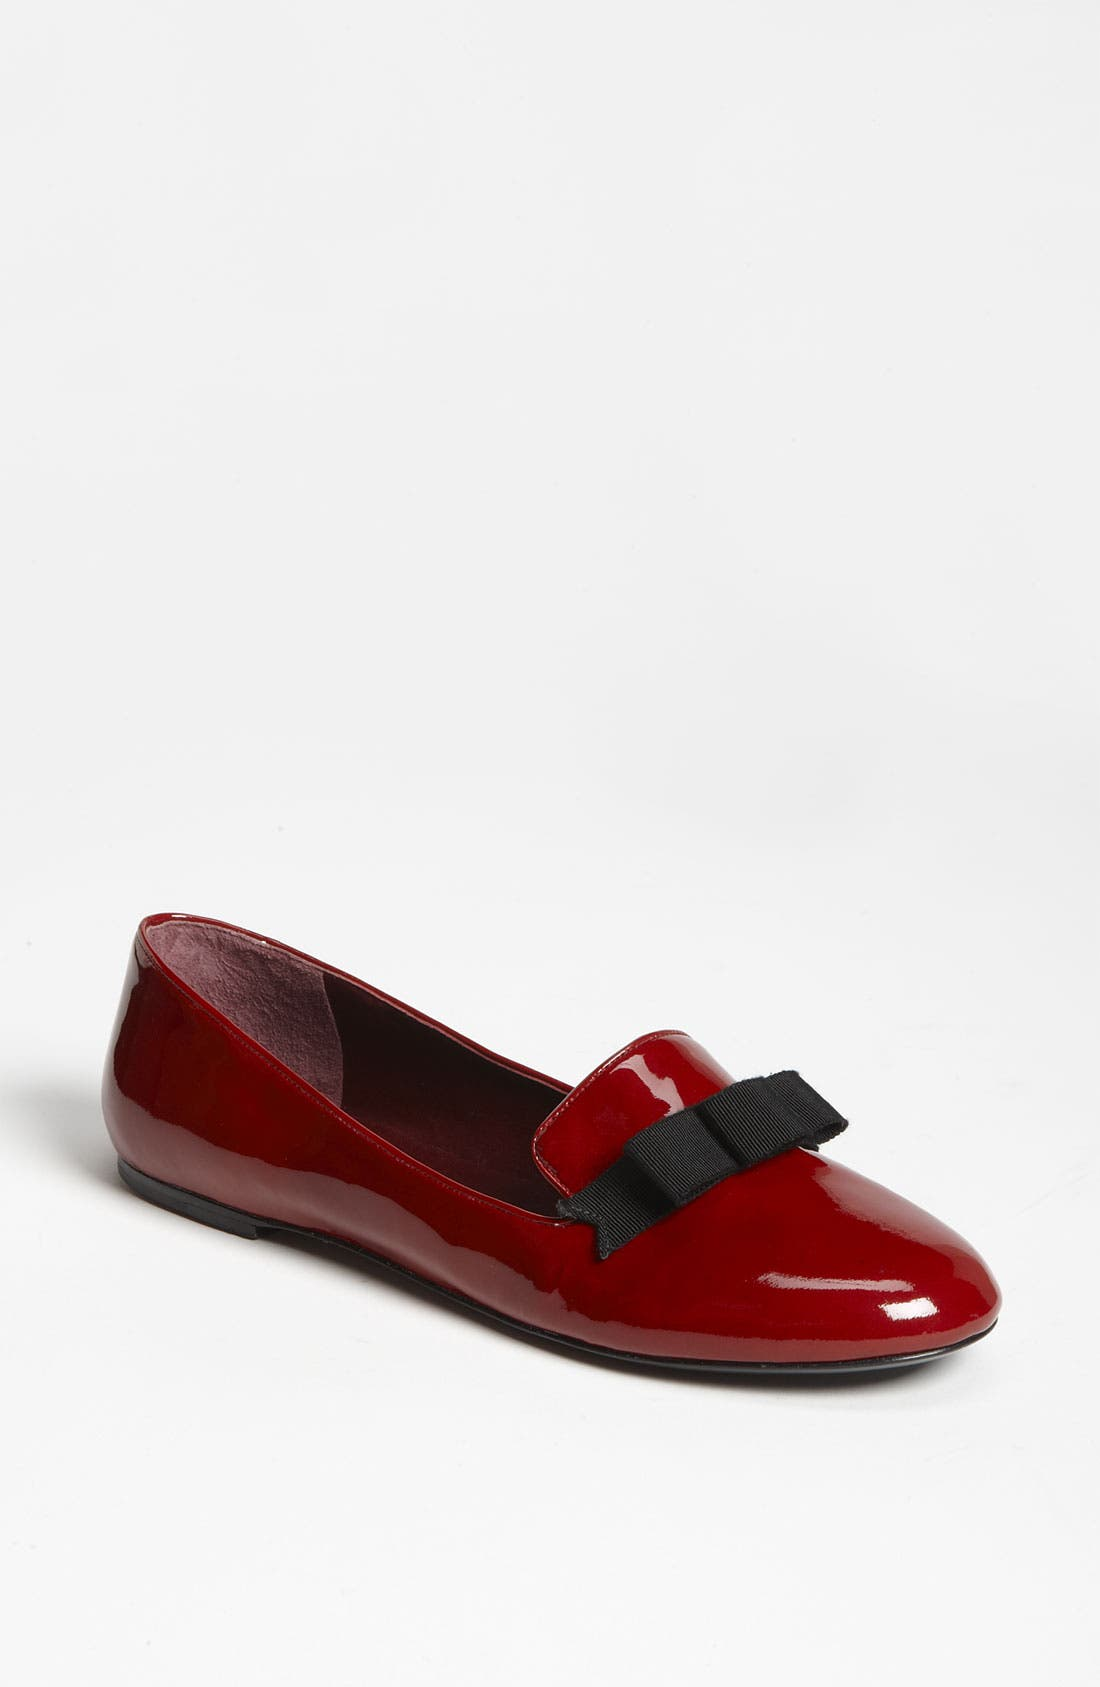 Main Image - MARC BY MARC JACOBS Slipper Loafer